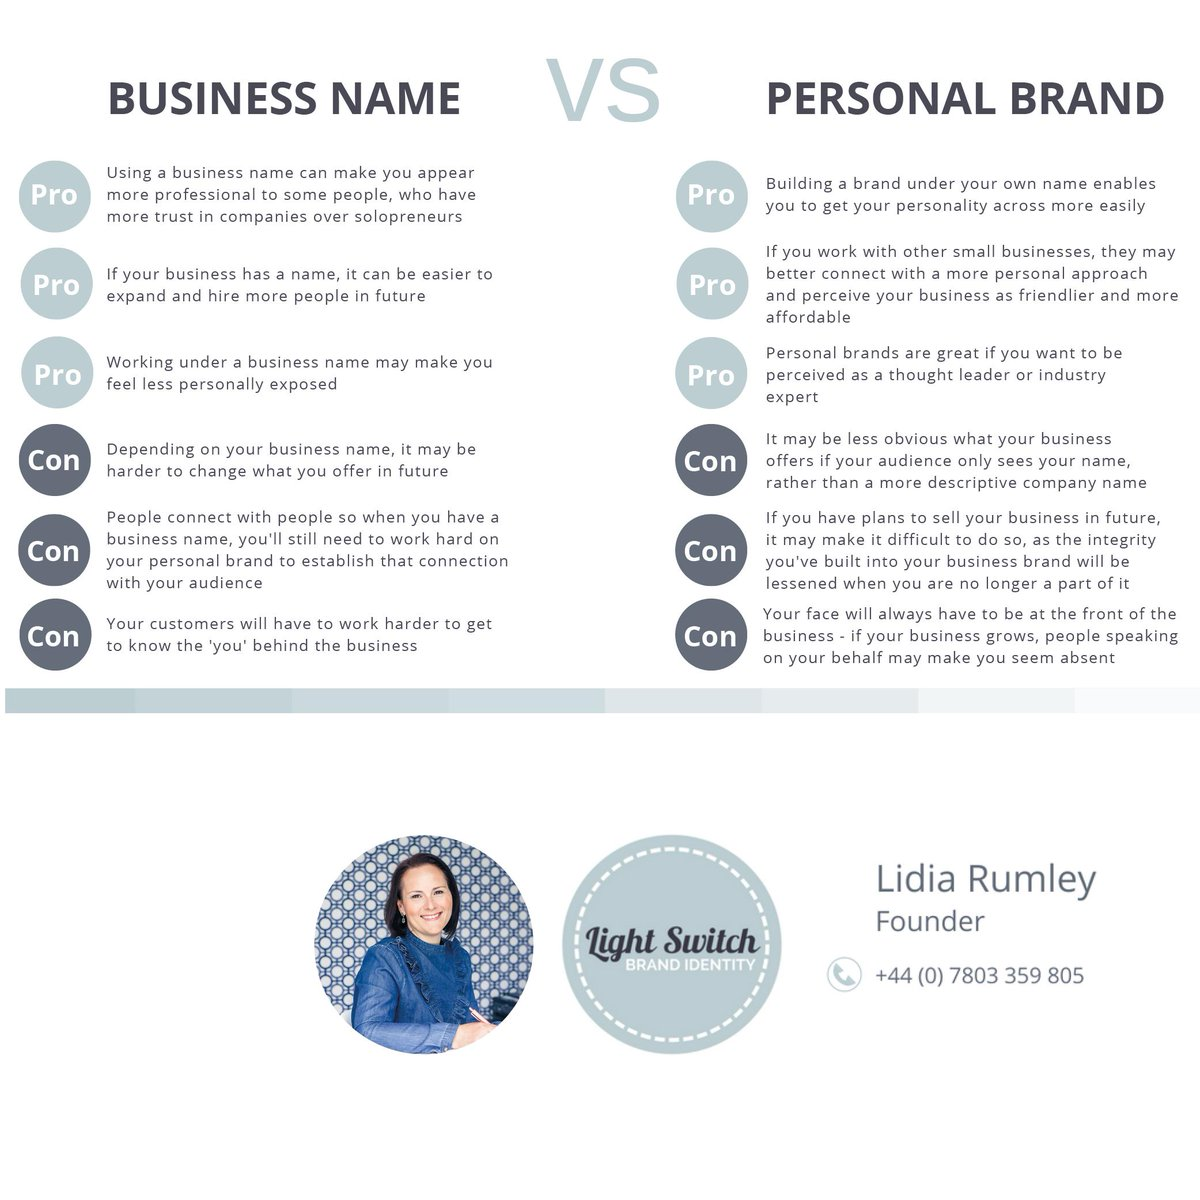 To &#39;I&#39;, or to &#39;we&#39;: that is the question. To build our brand under our own name or business name? To post on social media in first person or as the royal &#39;we&#39;? Lidia Rumley of @LightSwitchBI outlines the pros &amp; cons of both. #surreysmallbusiness  #womeninbusiness<br>http://pic.twitter.com/kQBvRwwX9U